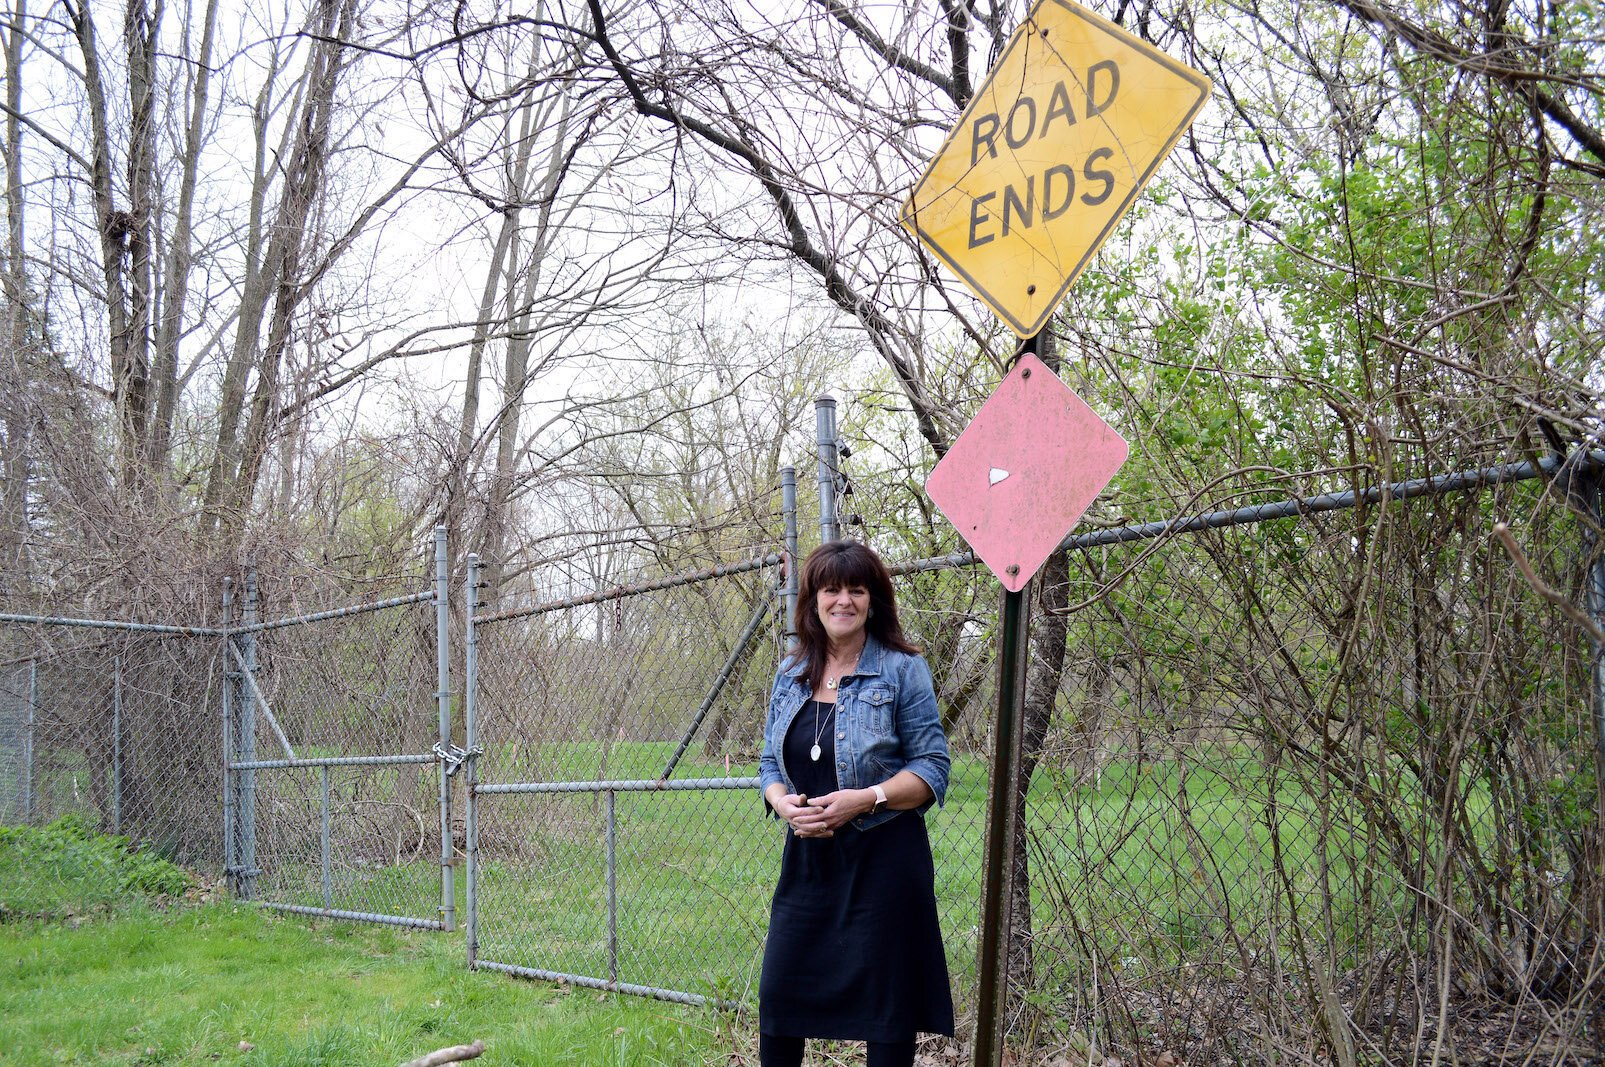 Galesburg mayor Lori West in the spring of 2019, standing were the KRVT was planned to go onto land near the Kalamazoo River.